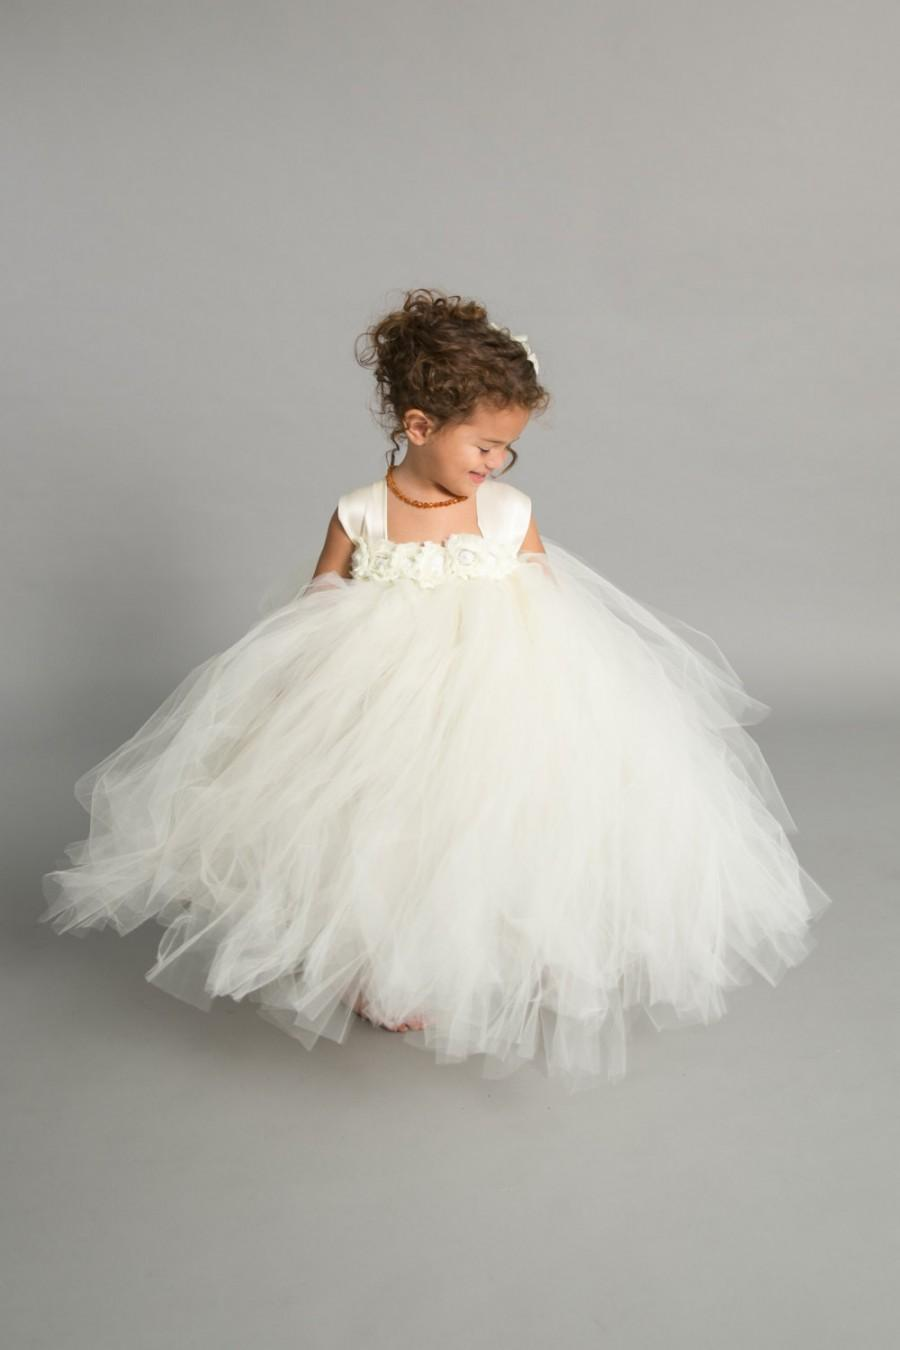 78edc63d9 Flower girl dress - Tulle flower girl dress - Ivory Dress - Tulle dress-Infant/Toddler  - Pageant dress - Princess dress - Ivory flower dress